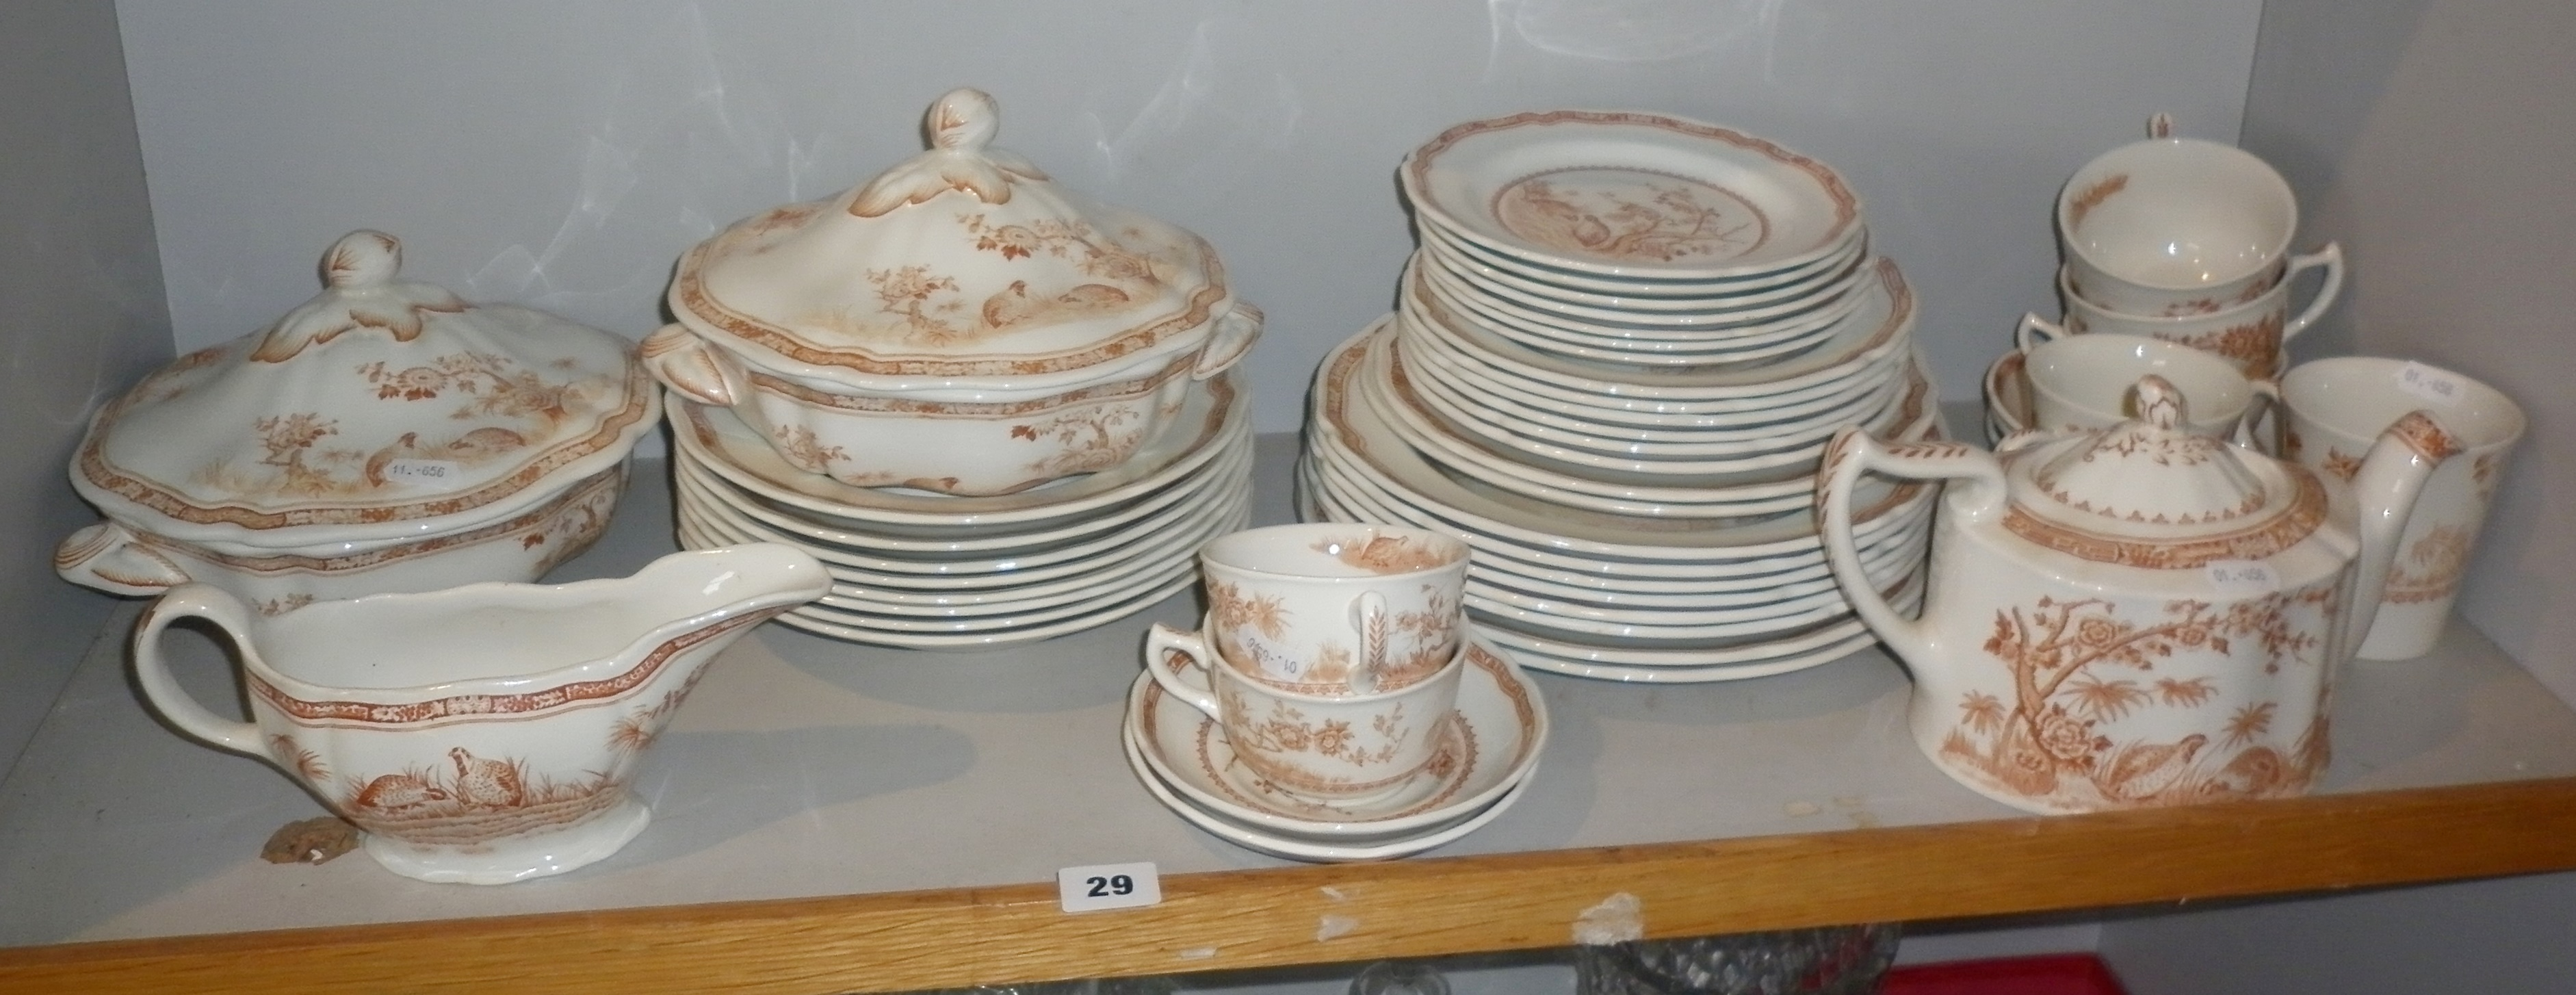 Furnival 'Quail' pattern china dinner and tea service including two tureens, teapots etc (48